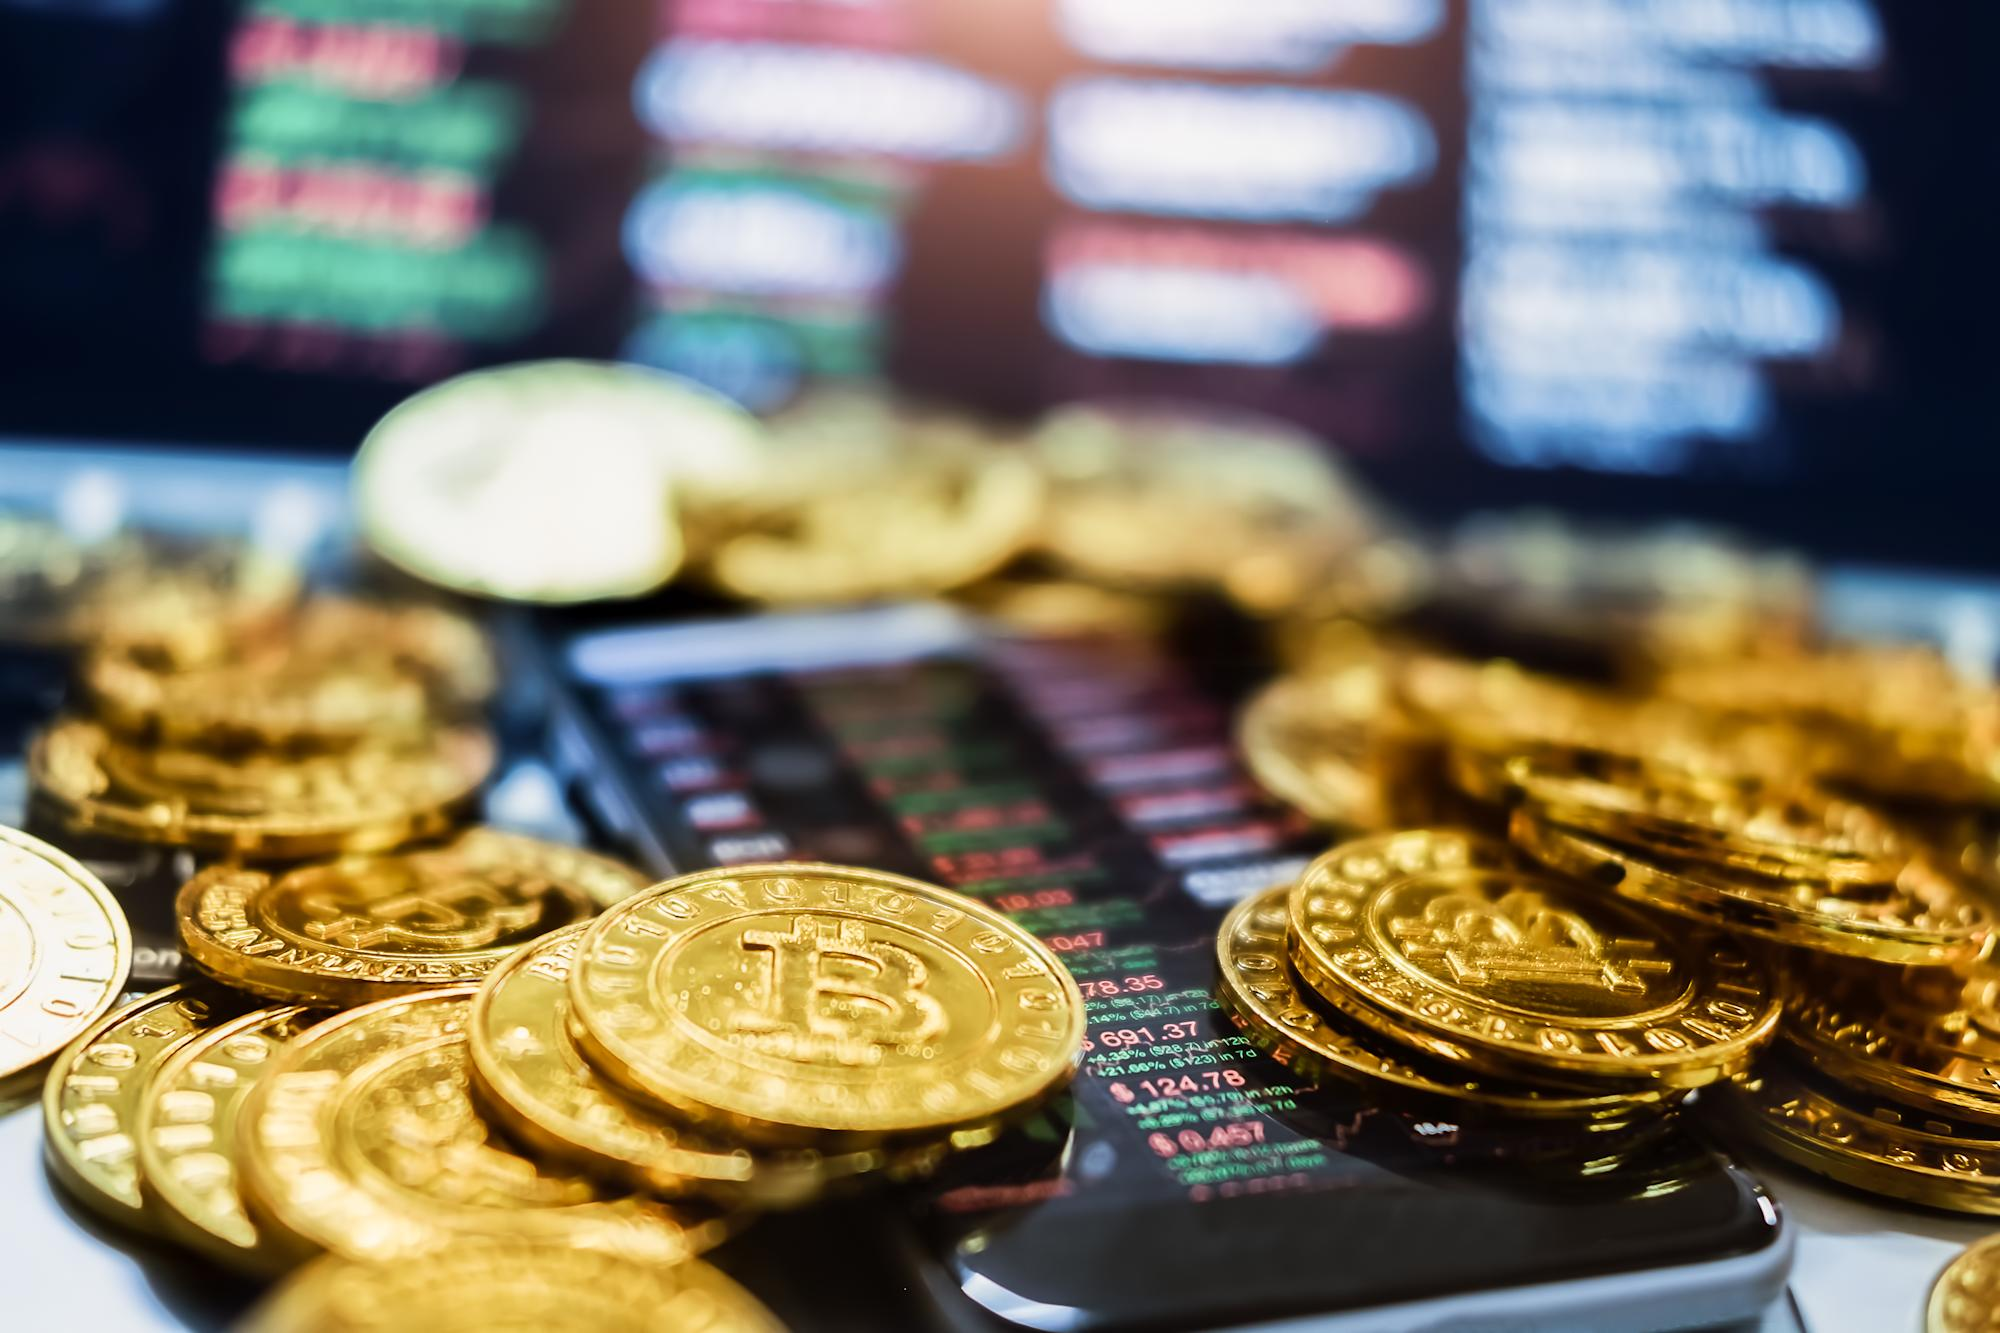 bitcoins rappers delight